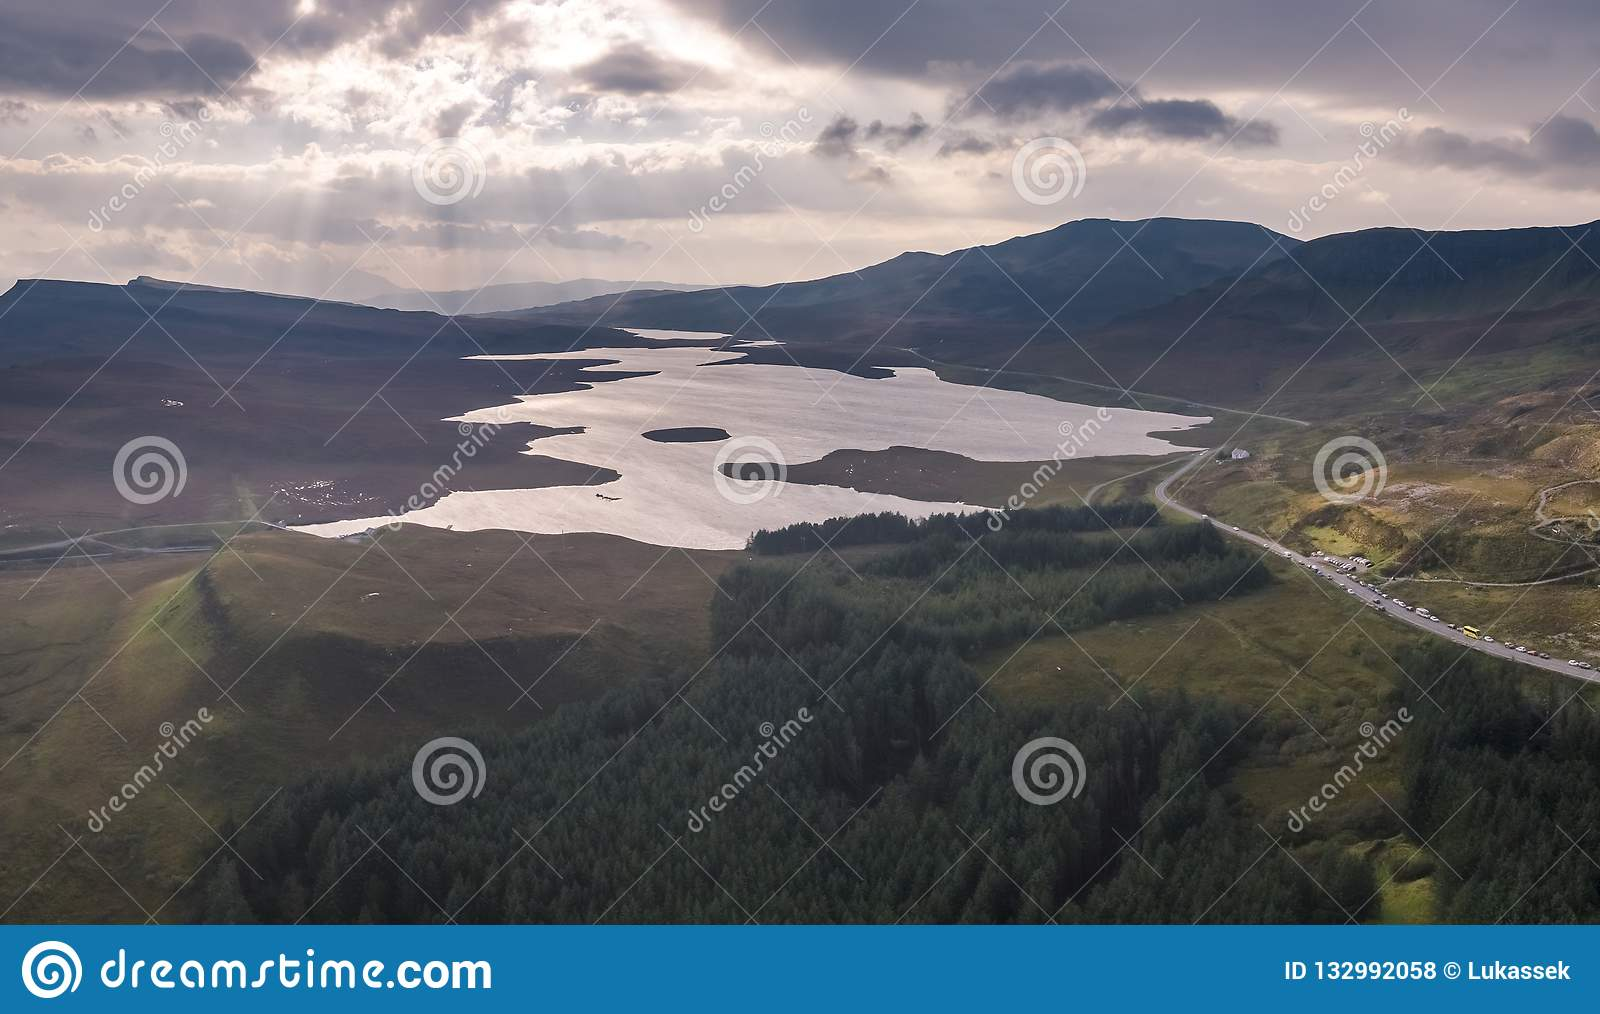 Aerial view of the Loch Leathan close to the Old Man of Storr, Isle of Skye, Scotland